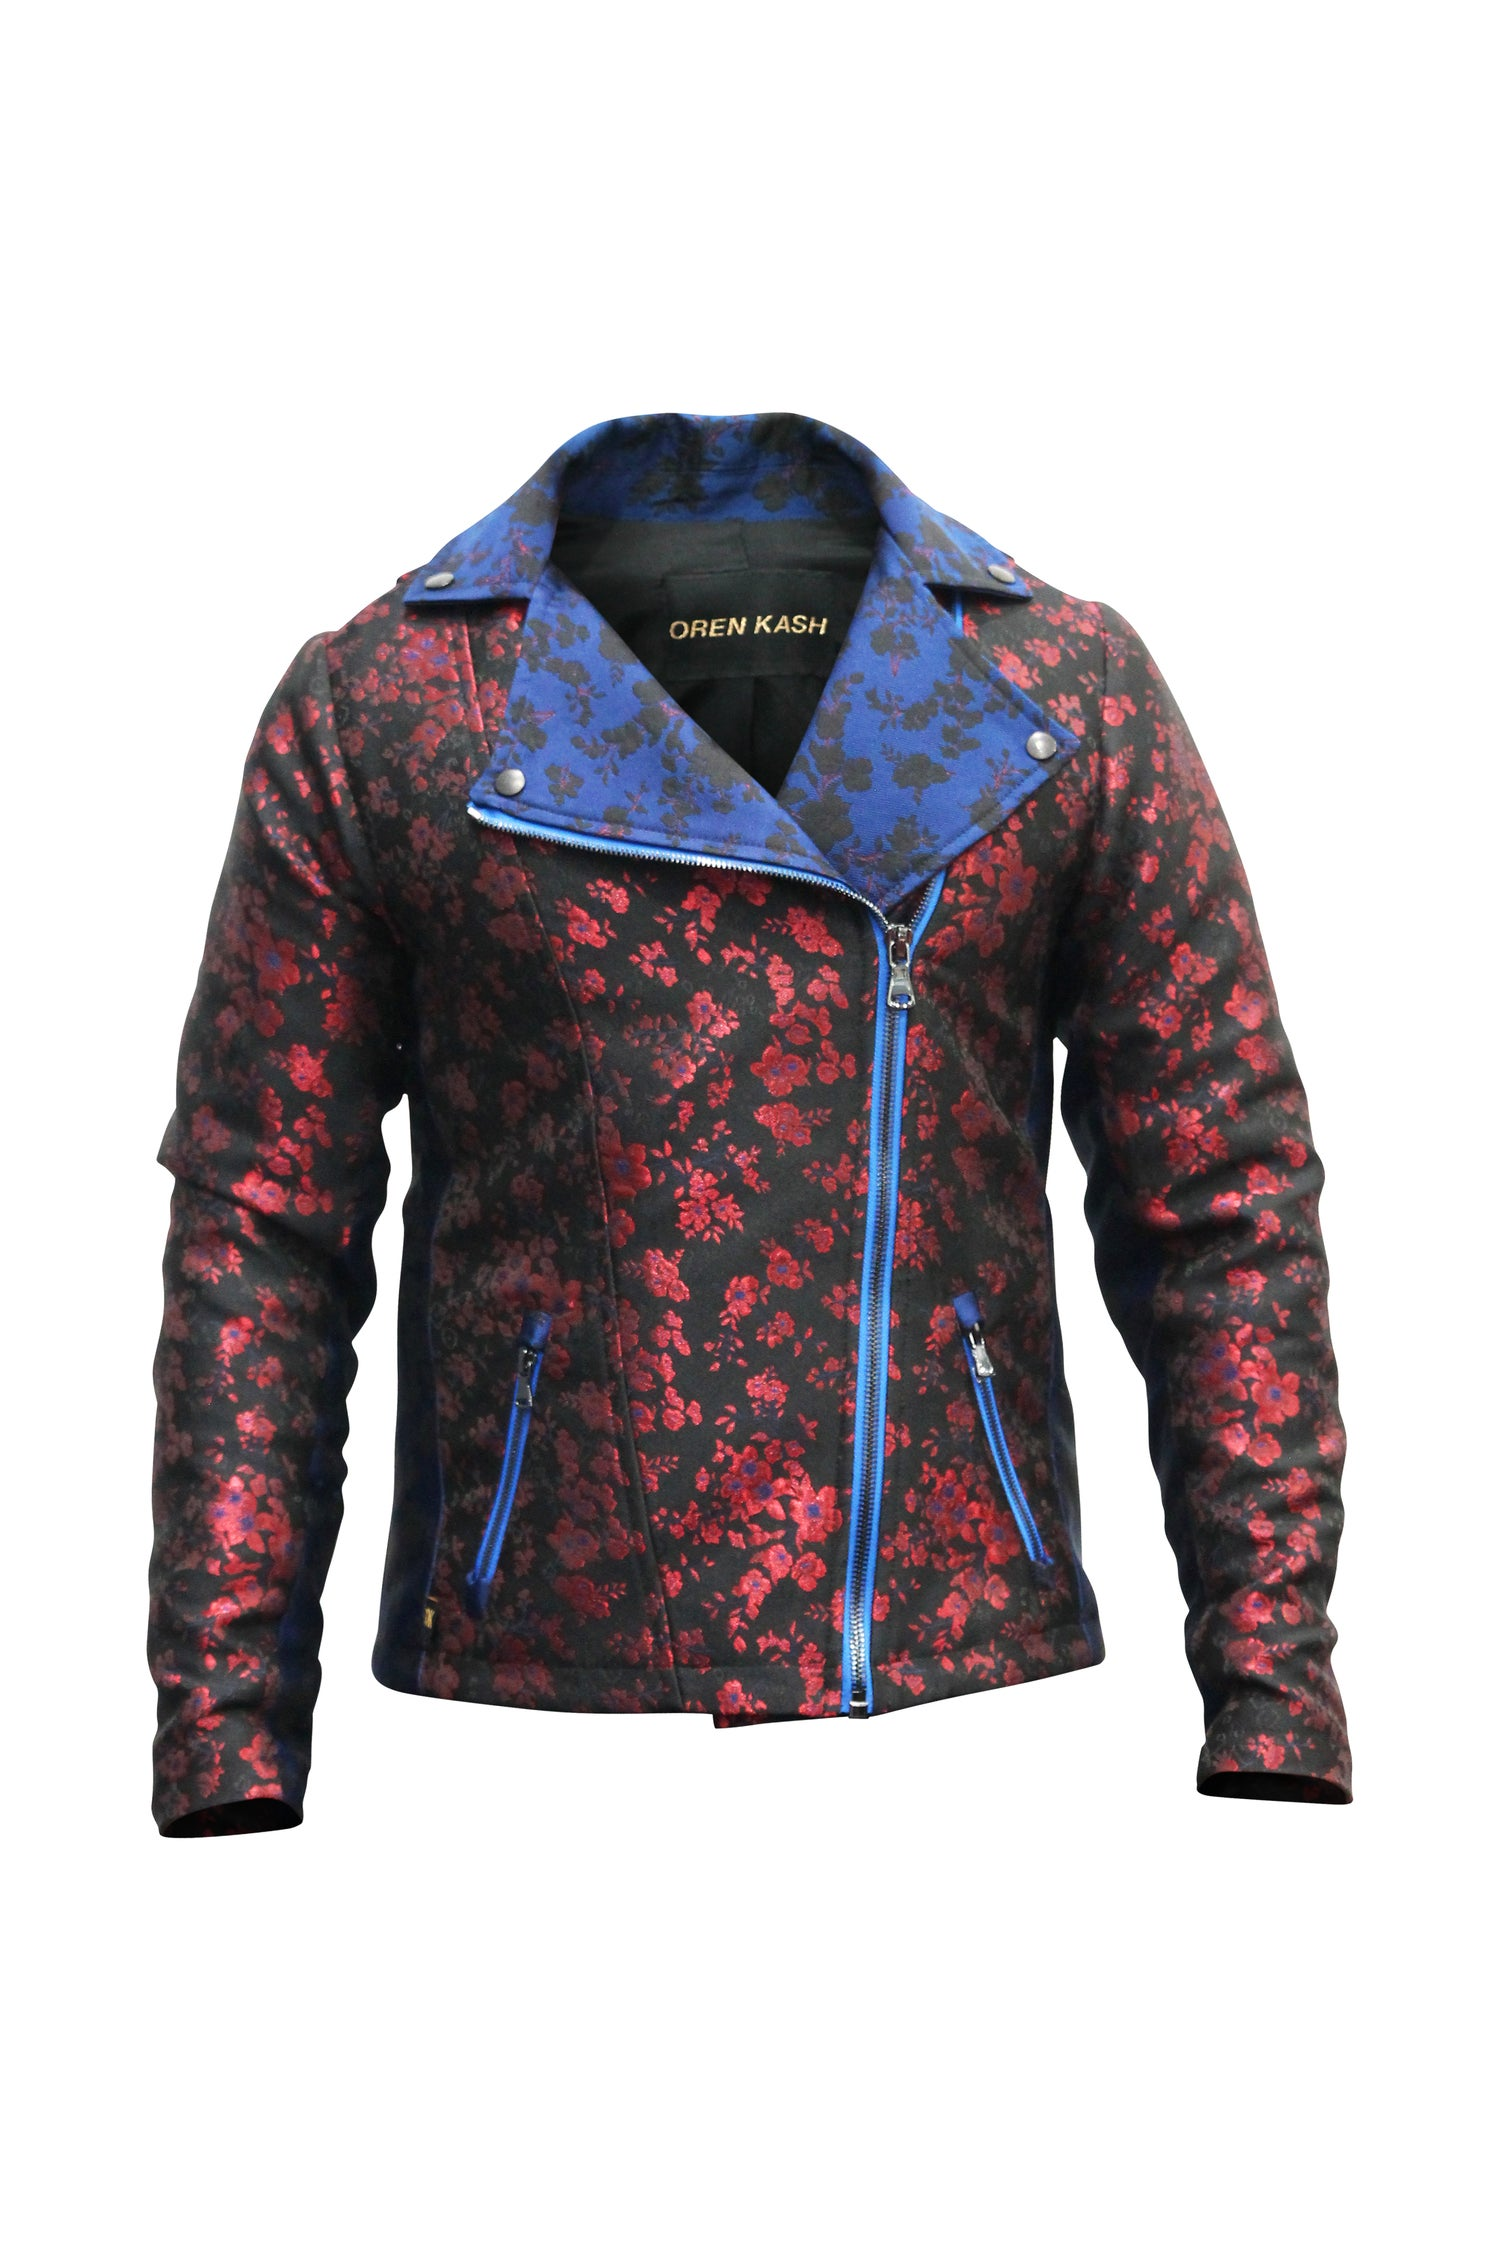 Image of Royal Brocade Floral Moto